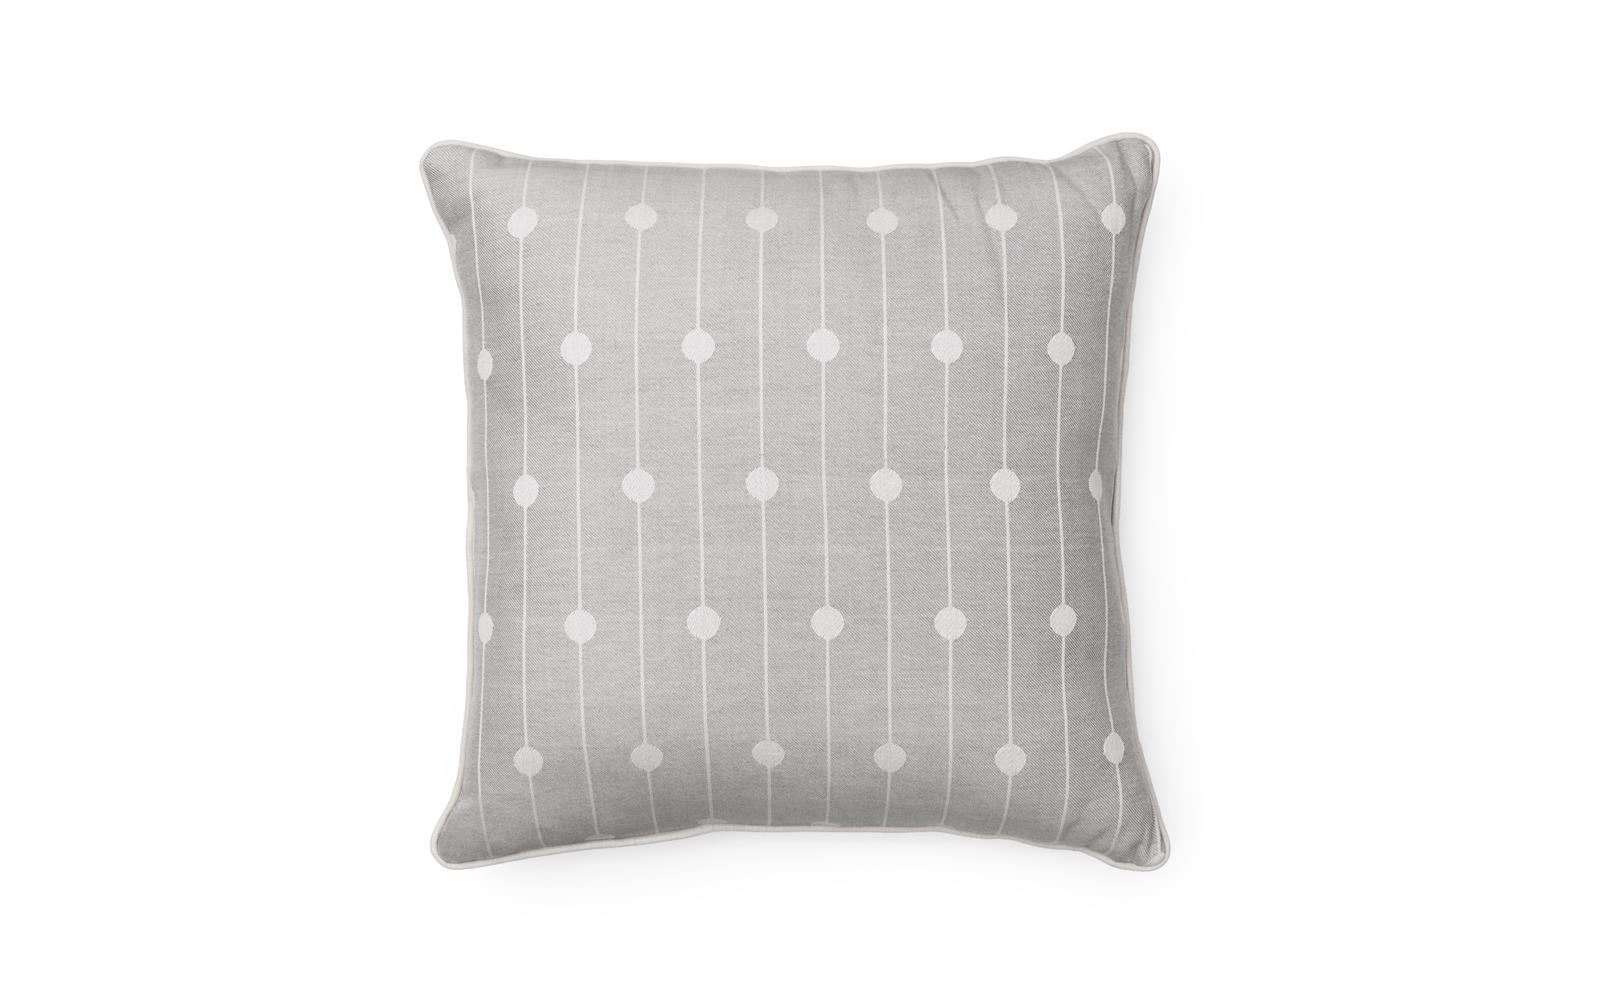 Cushion Mega Fairy Lights 50 x 50 cm1